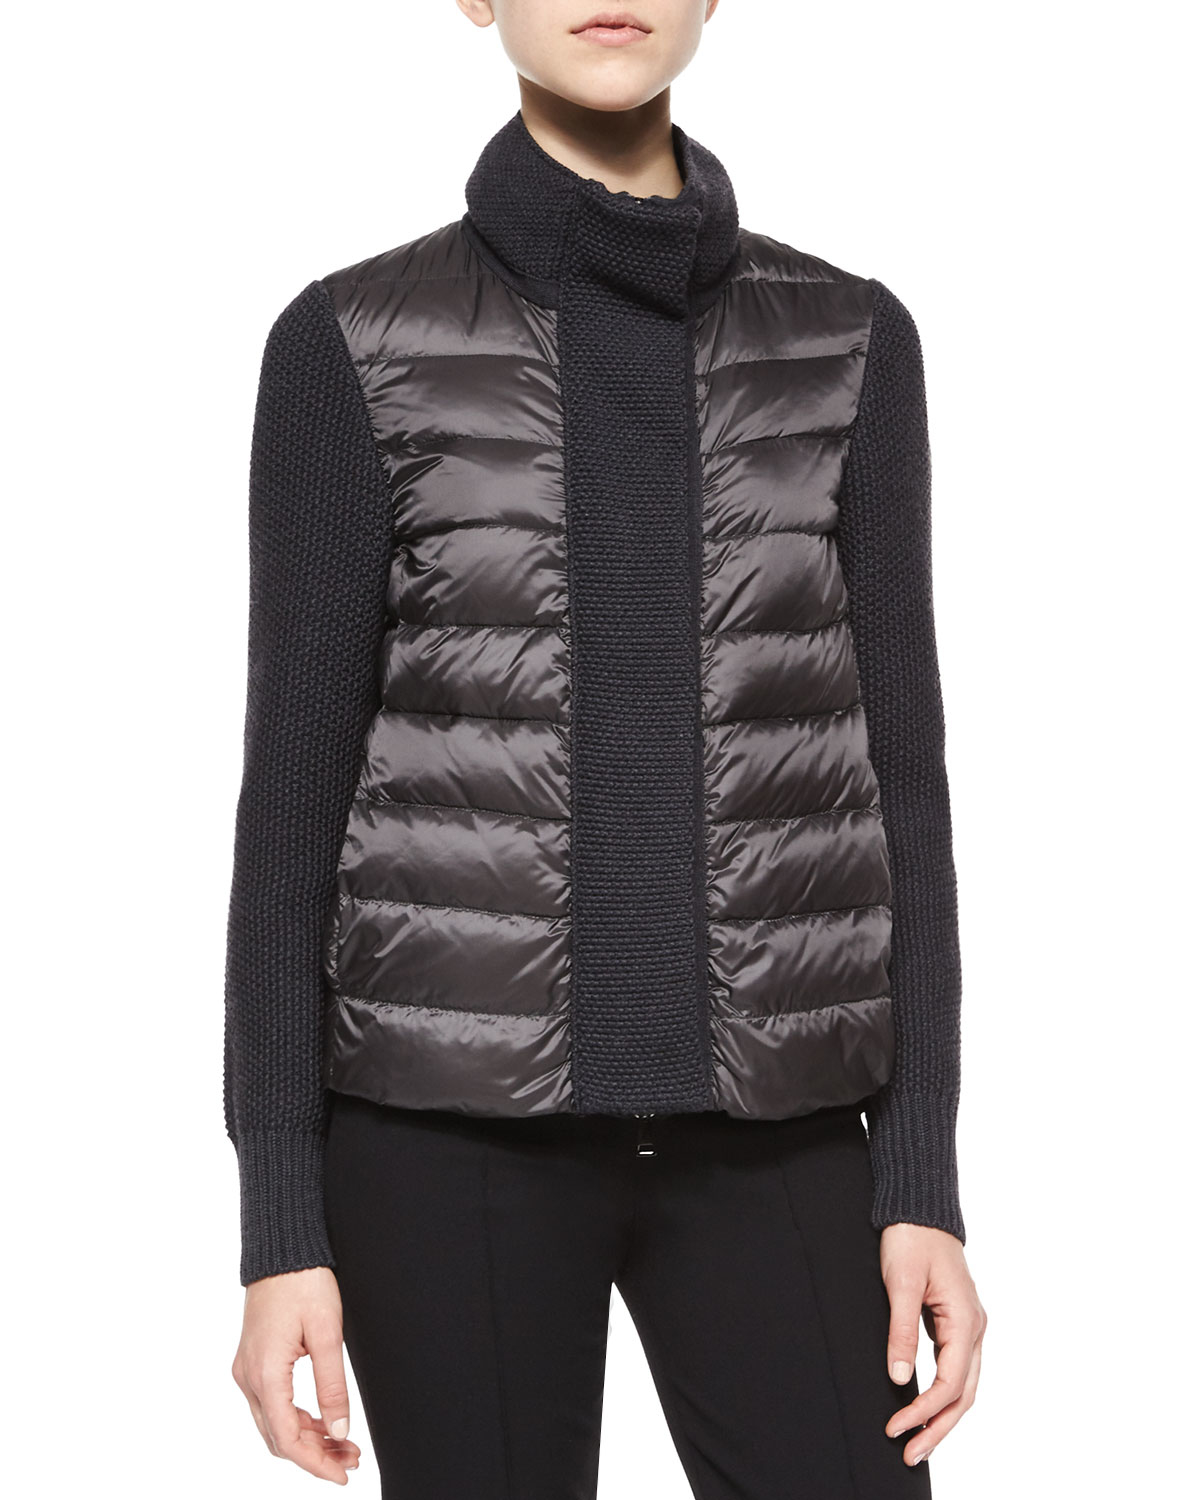 Moncler Puffer Knit Co... Ivanka Trump Clothing